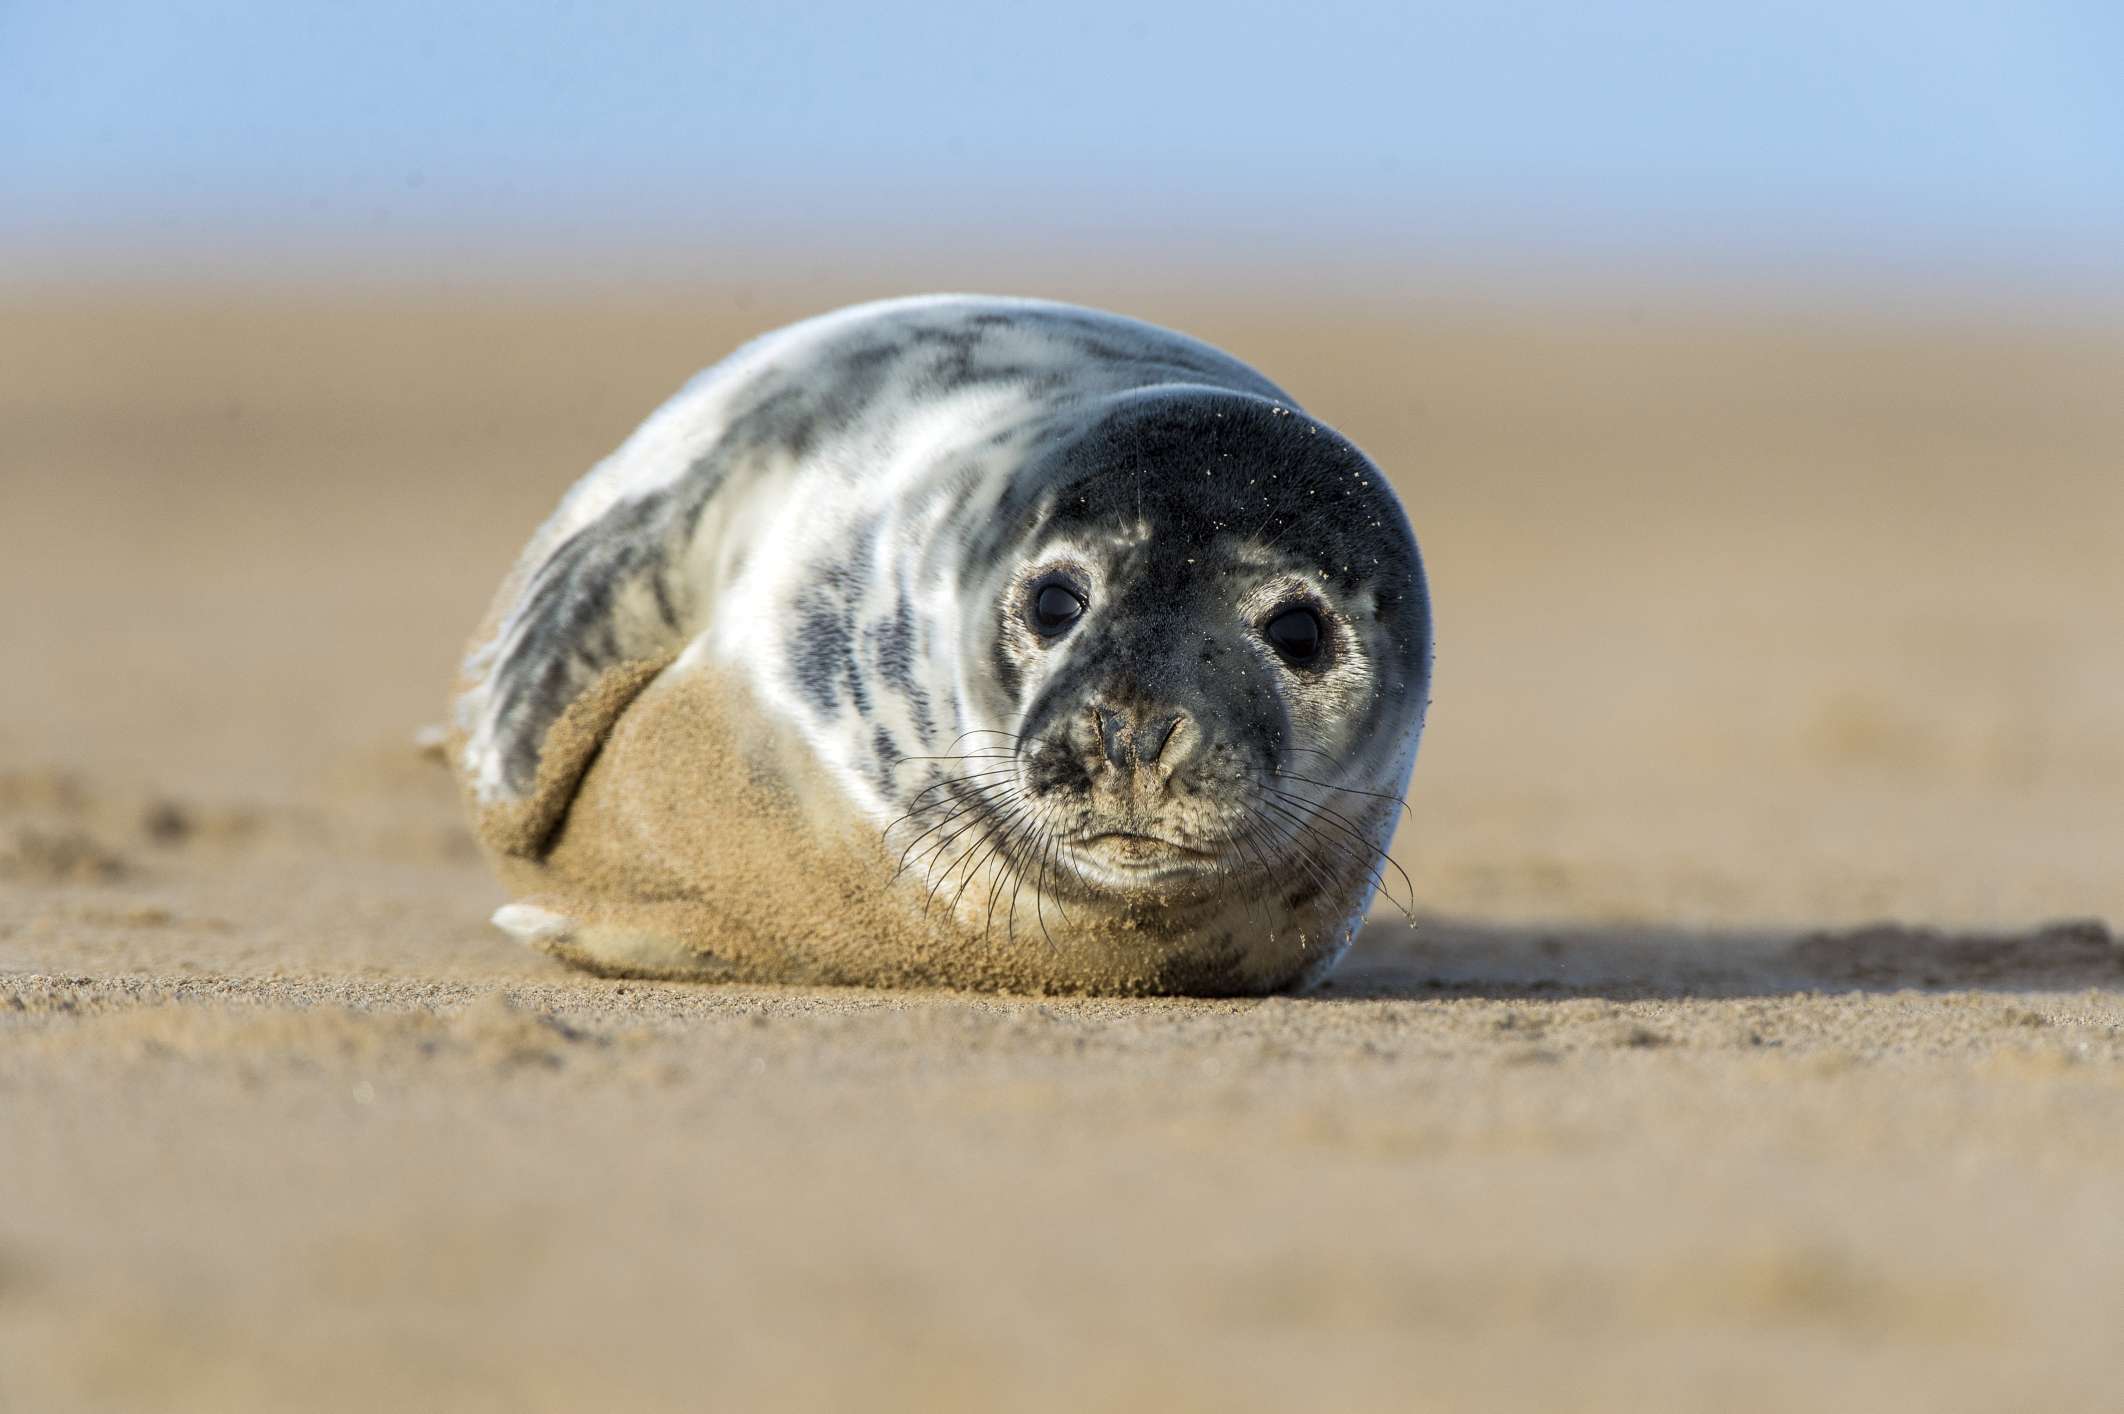 A gray seal, looking very cute as the paparazzi snap picture after picture.